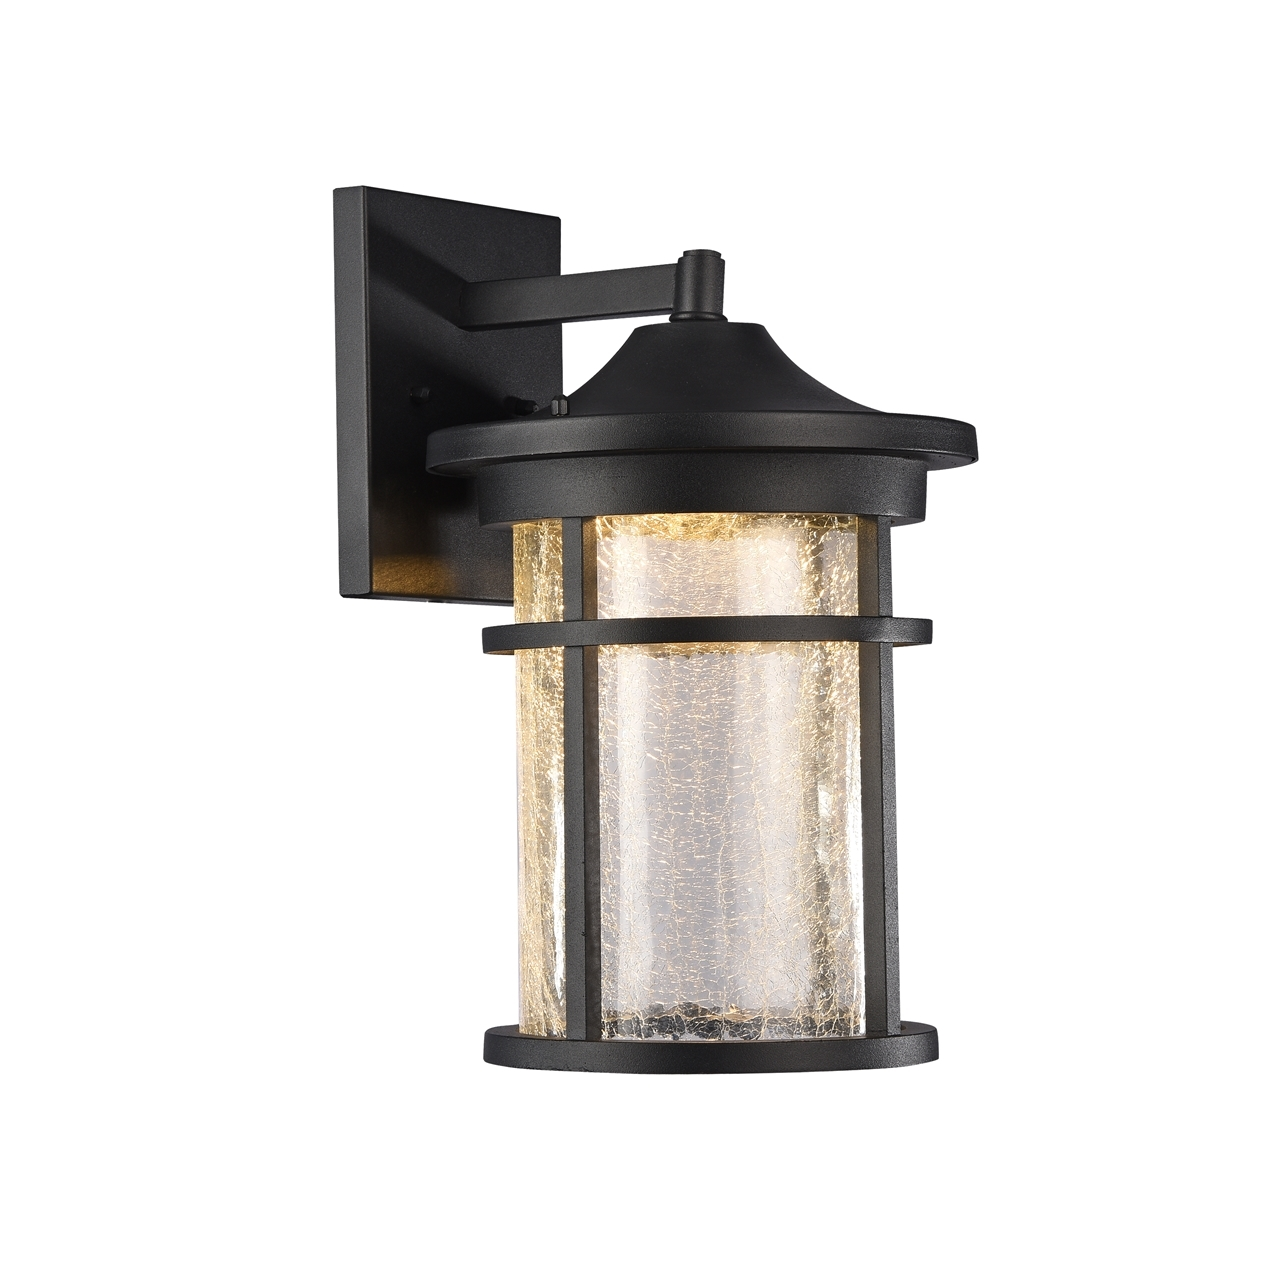 Chloe lighting inc lighting wholesale lighting wholesalers picture of ch22l52bk15 od1 led outdoor sconce mozeypictures Choice Image